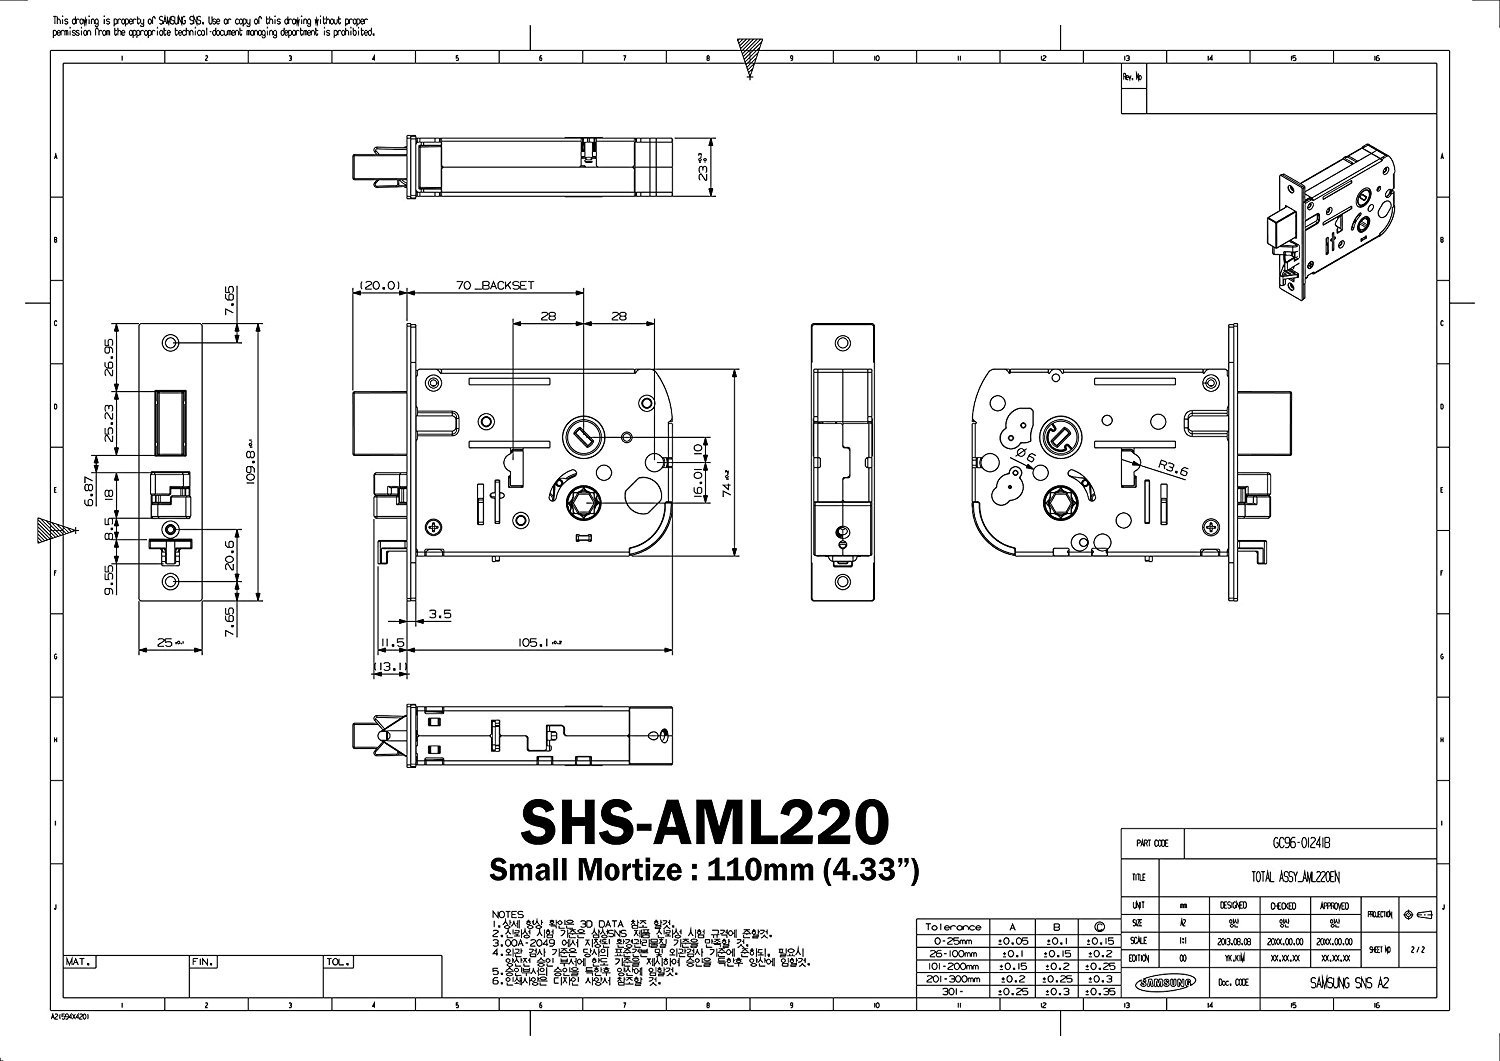 Samsung Sl 150 Wiring Diagram Smart Door Lock Ezon Shs H625 H625fbk En Digital English Version Aml320 Office Products